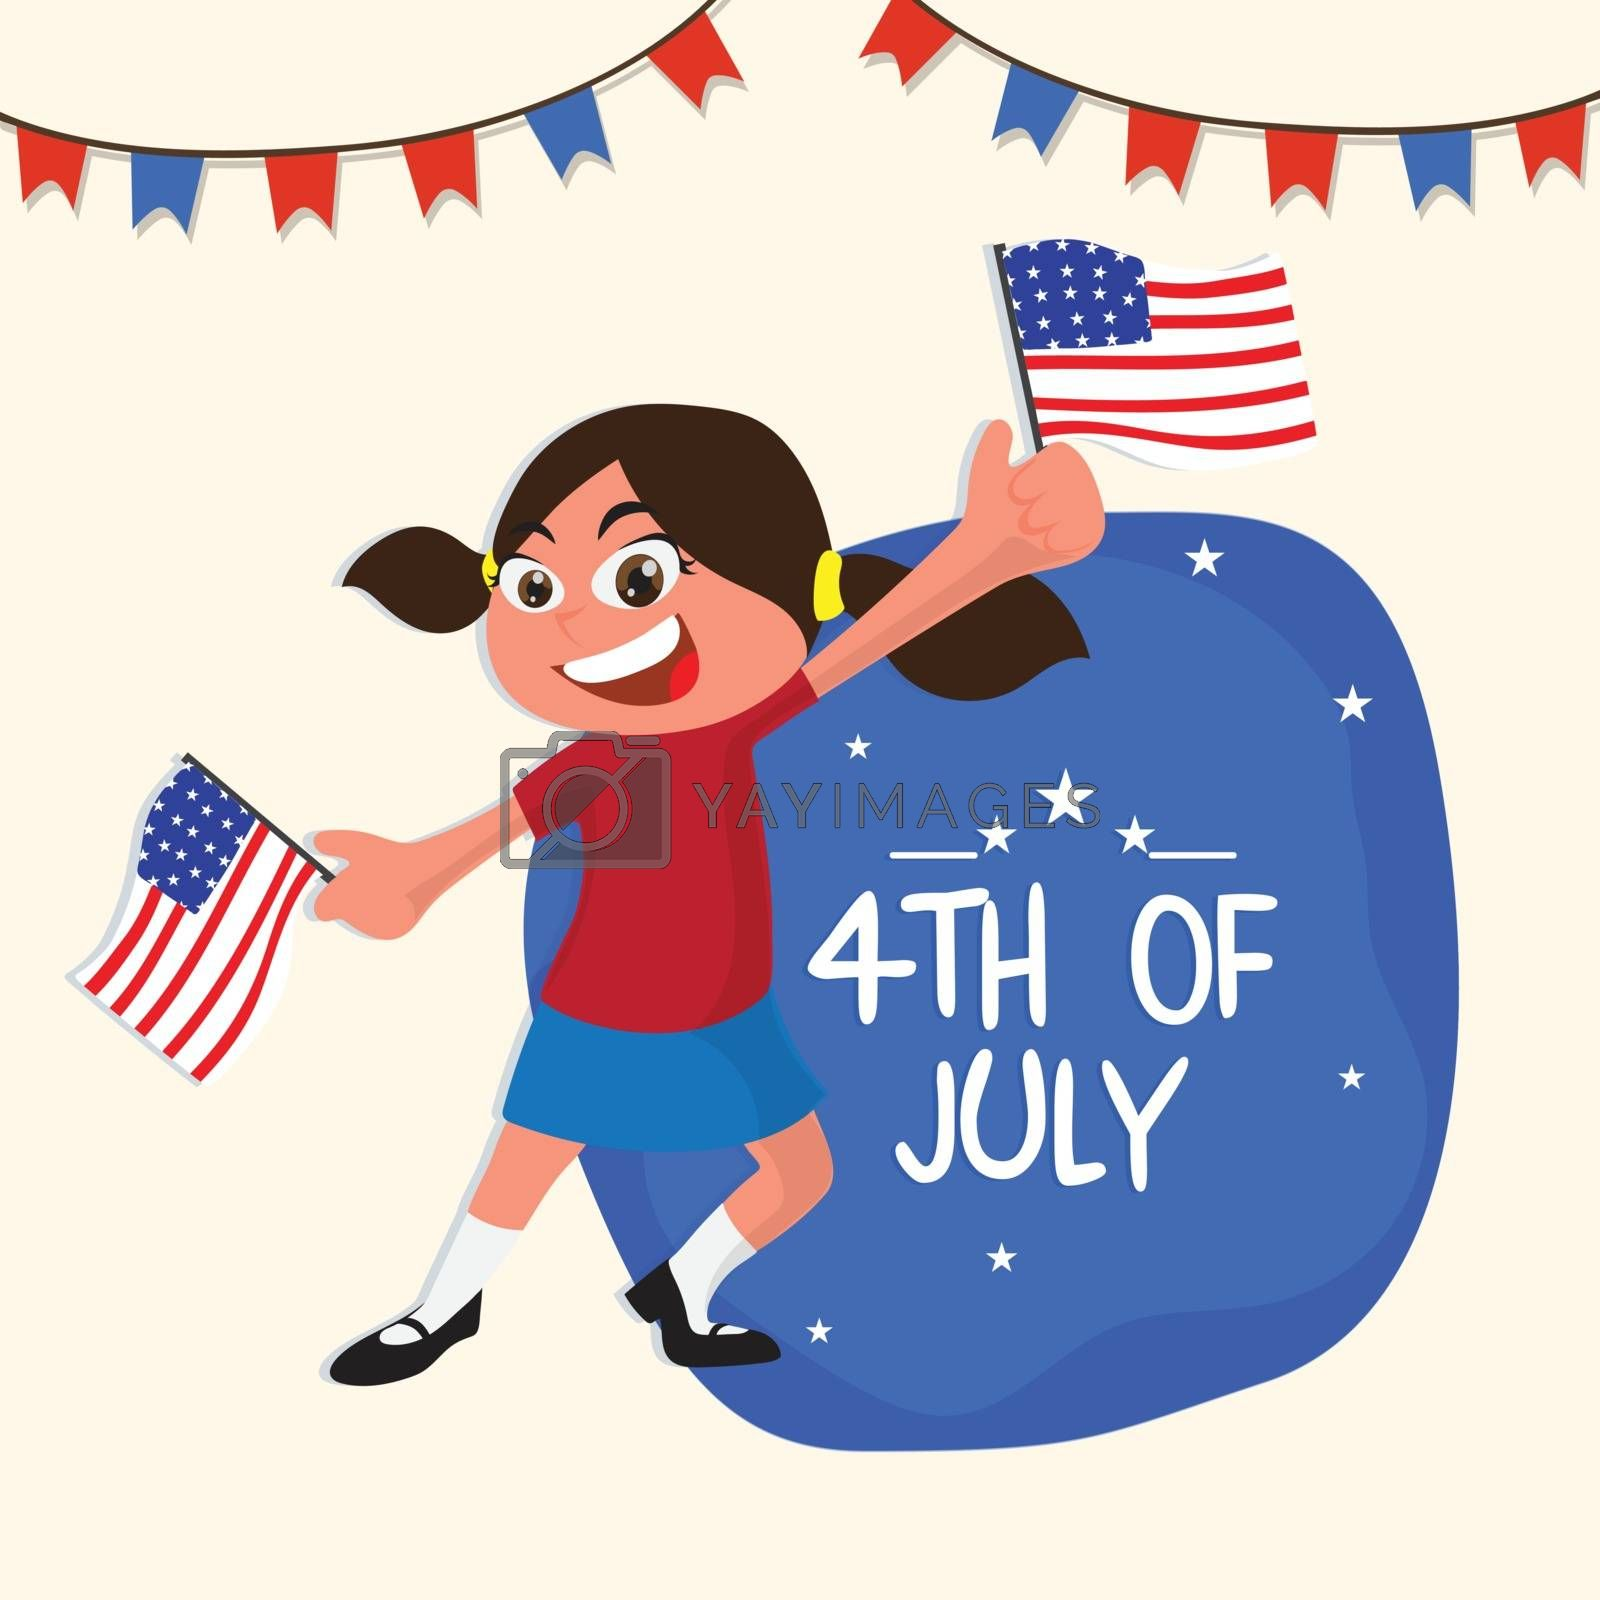 4th of July Flyer Design, with kid holding flag.